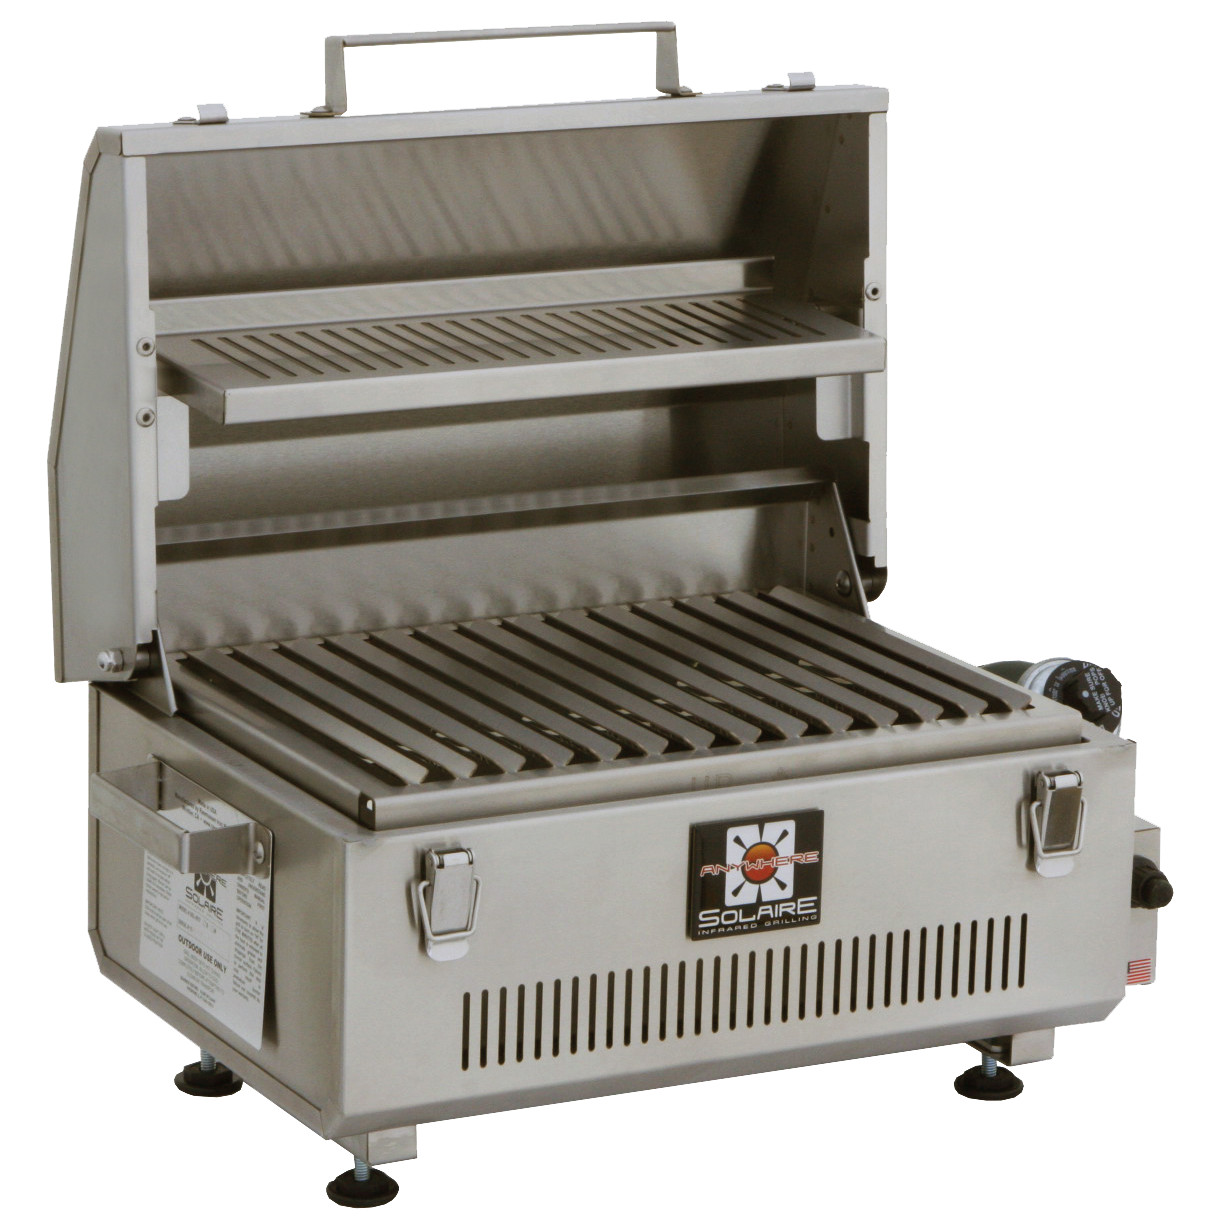 Portable Infrared Grill Solaire Portable Gas Grill